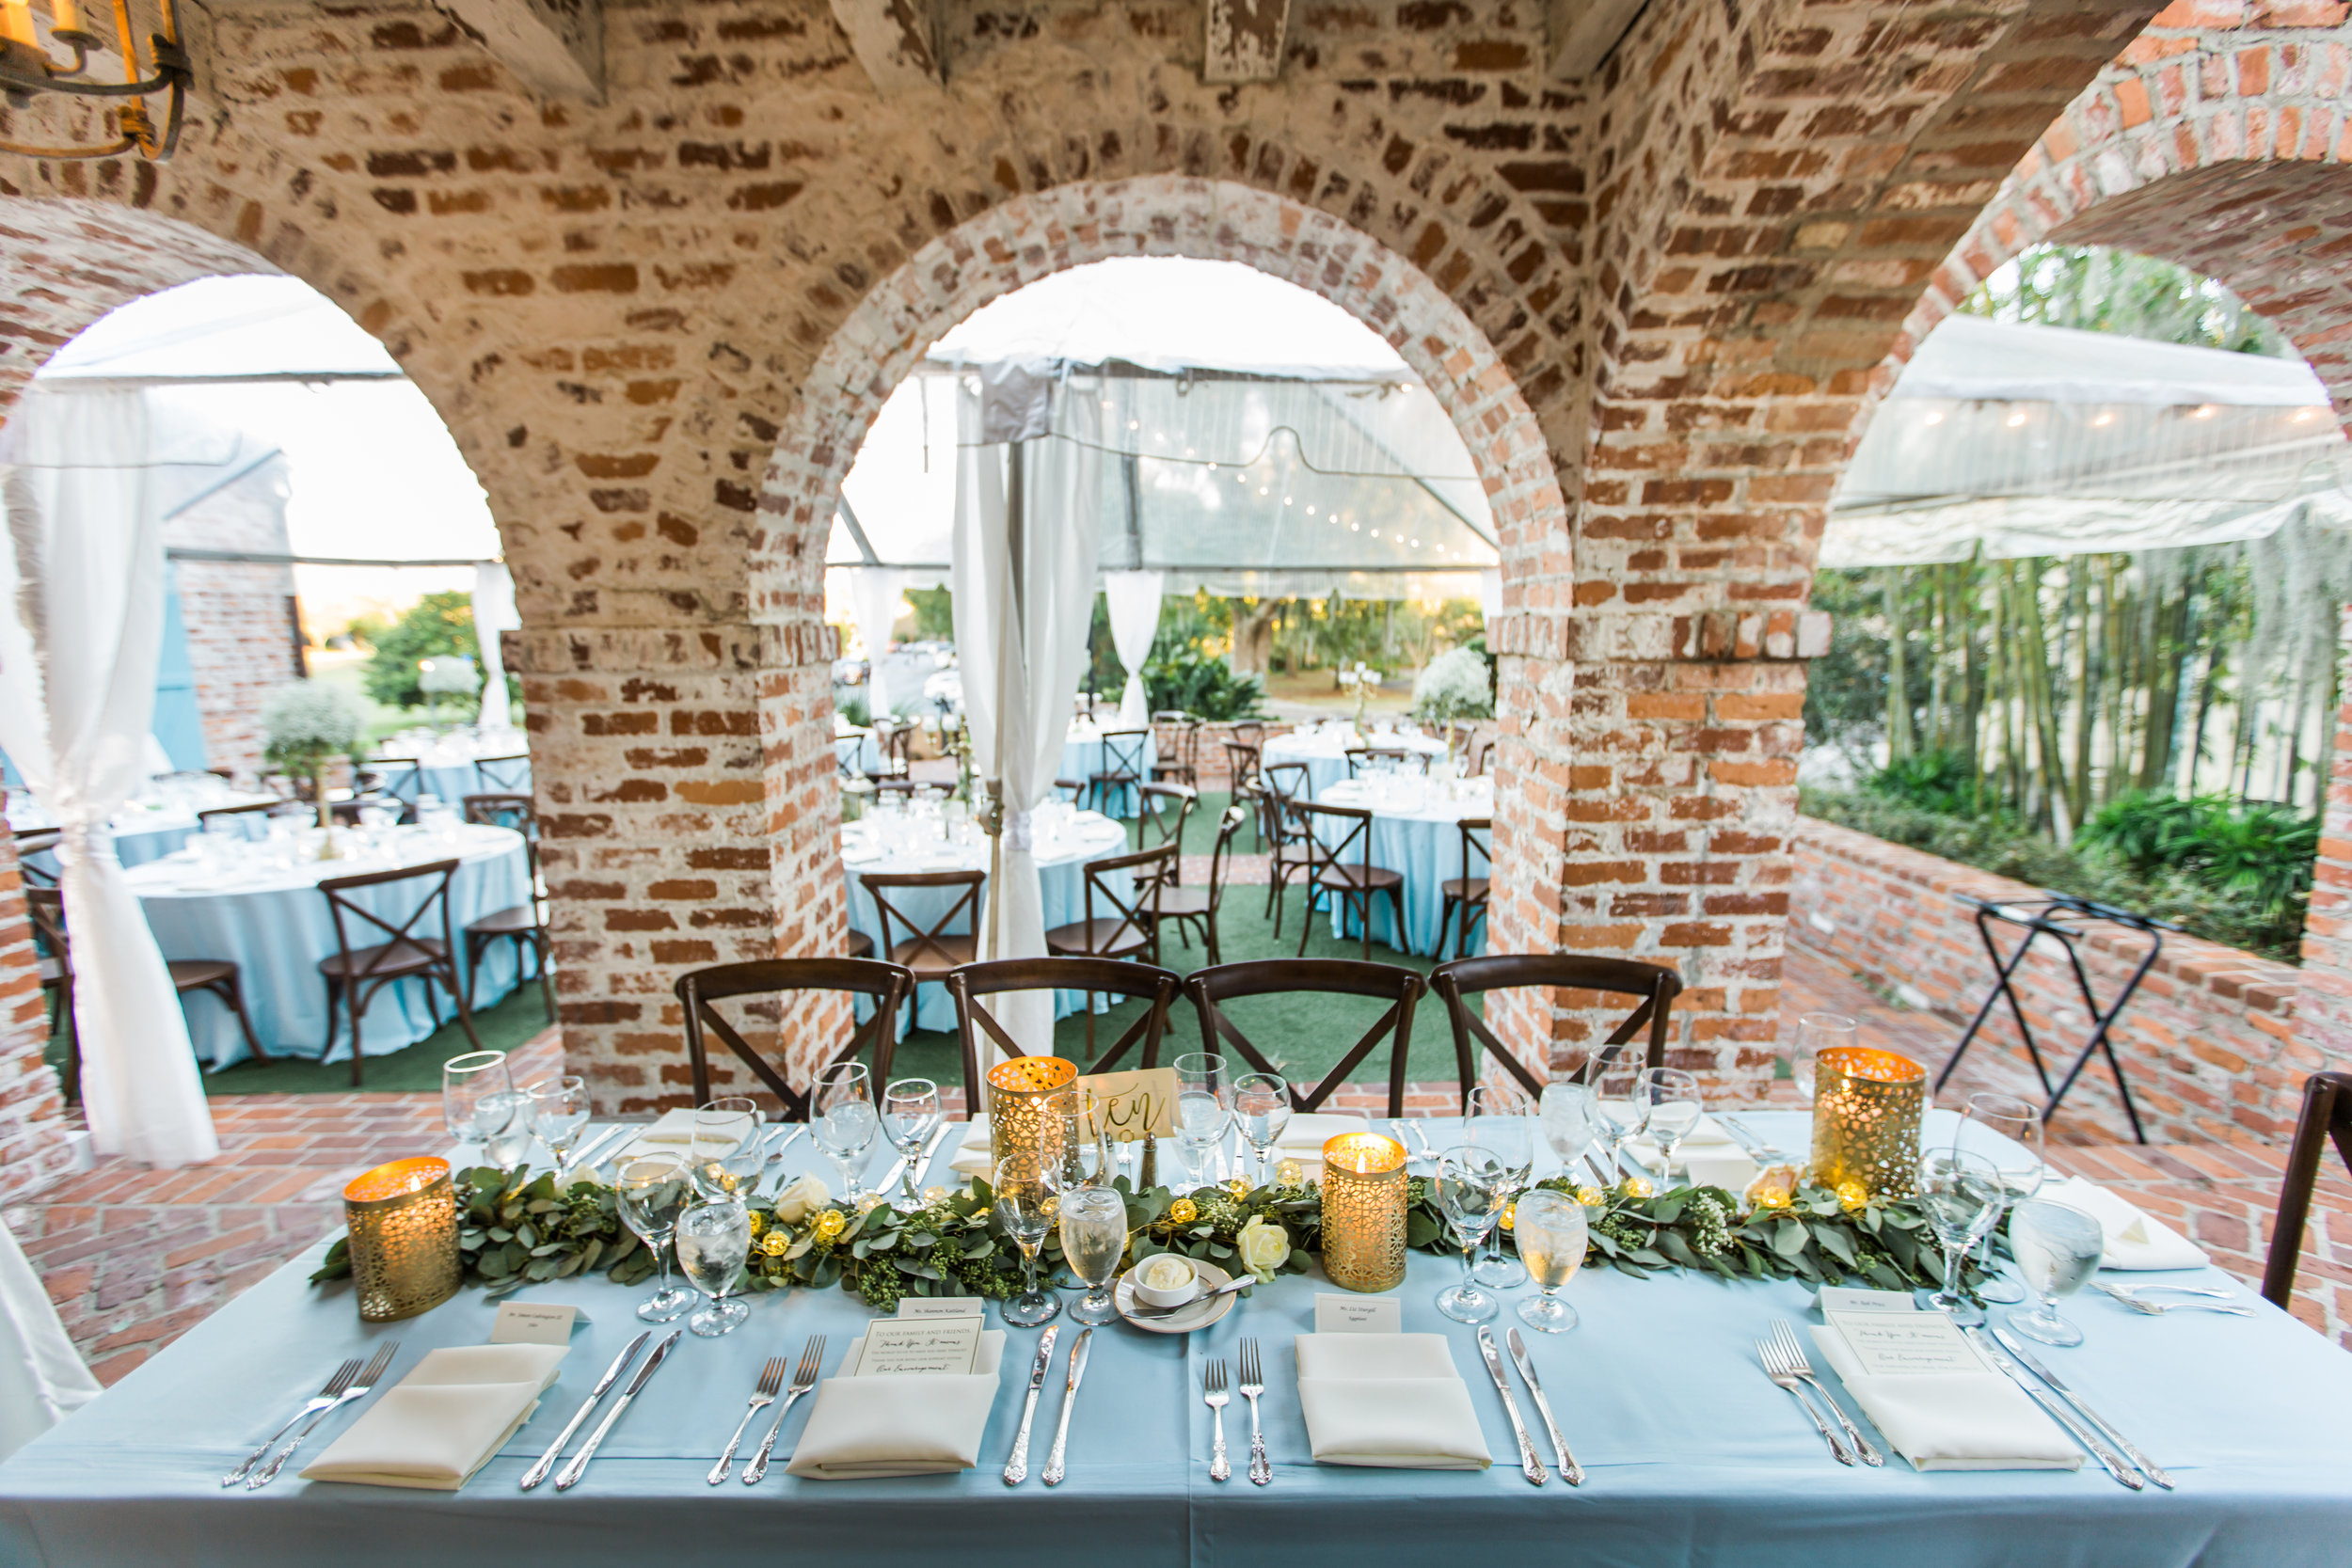 Erica & Aaron's enchanting powder blue & eucalyptus inspired wedding at the Casa Feliz Historic Home, with floral design by Simply Roses and decor by Kristy Rapp Events.